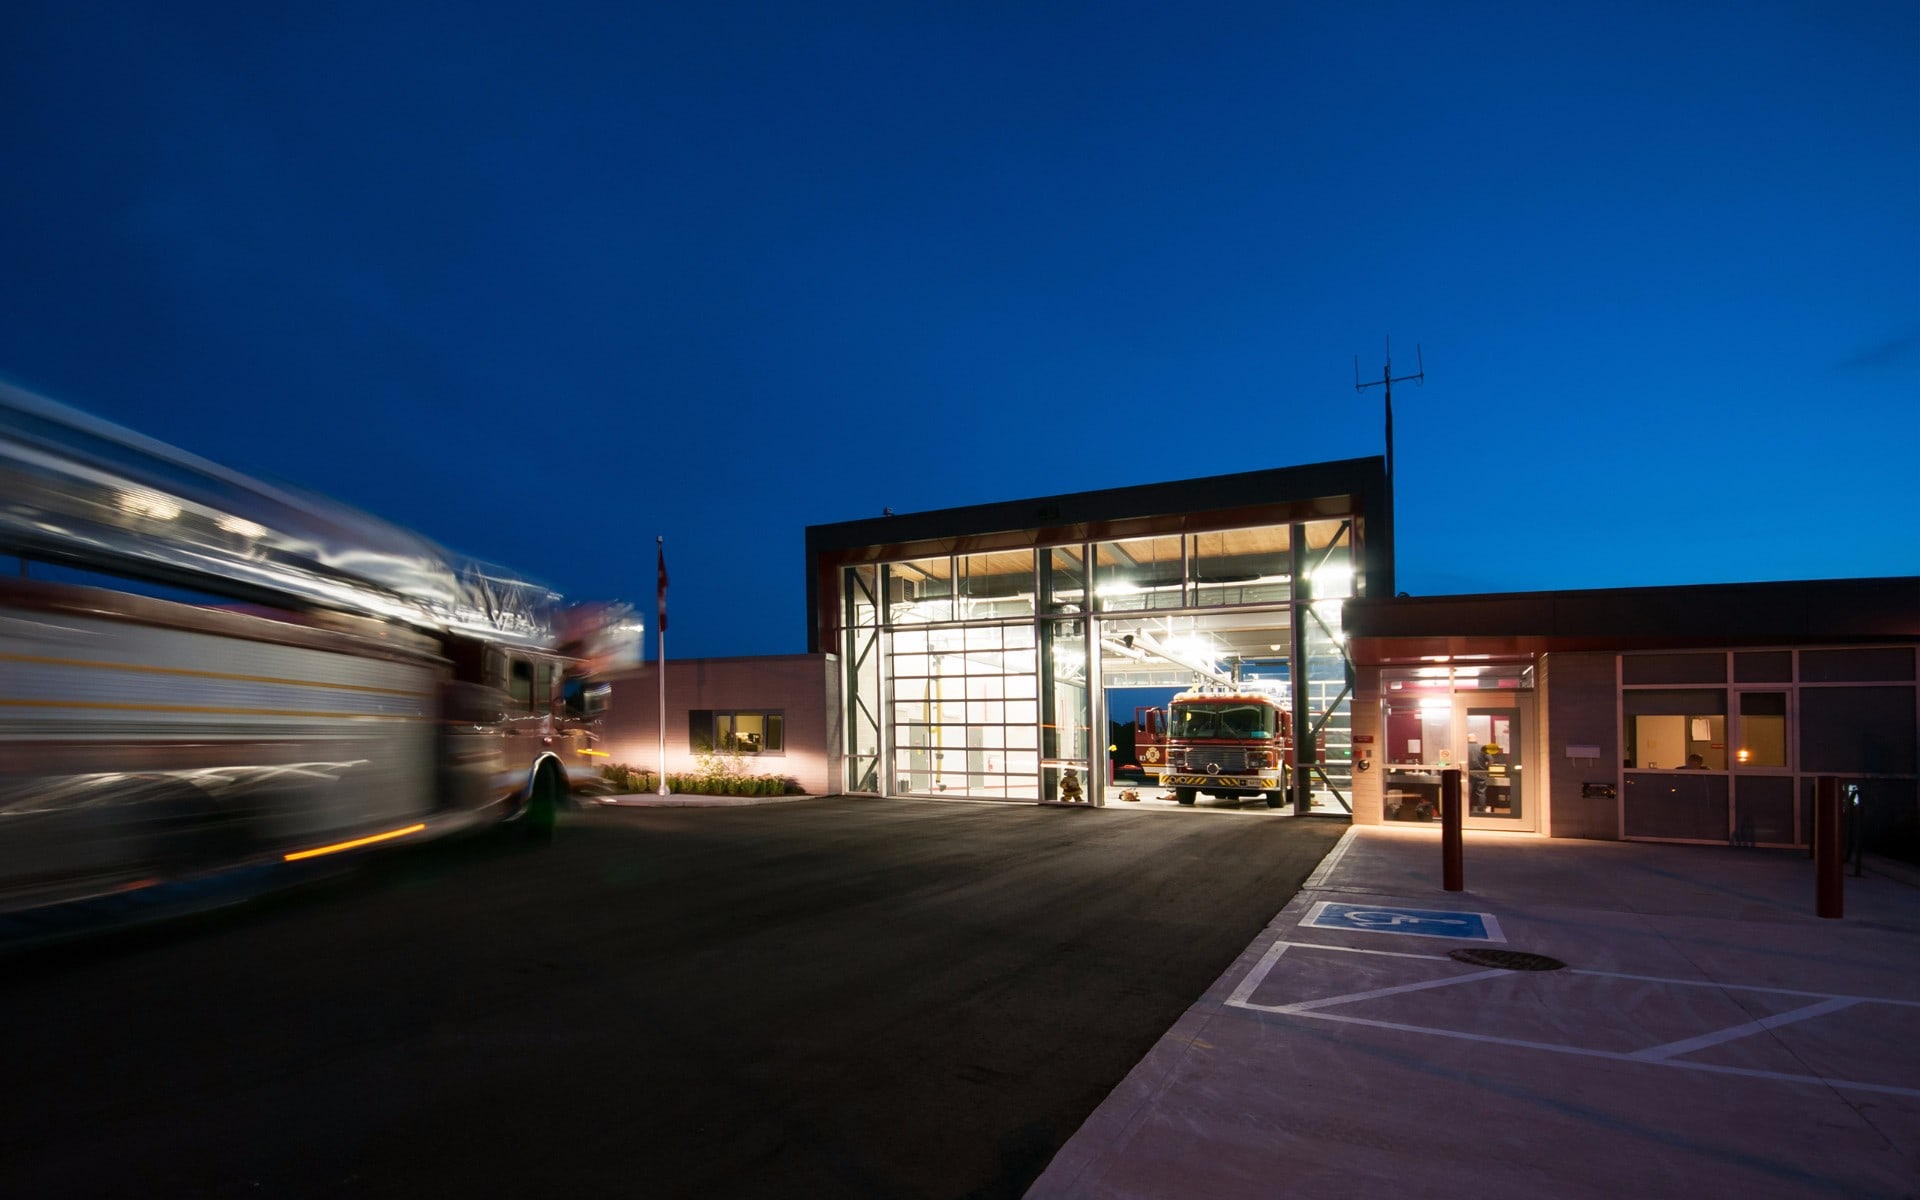 Twilight photo of the No. 7 Fire Station in London Ontario